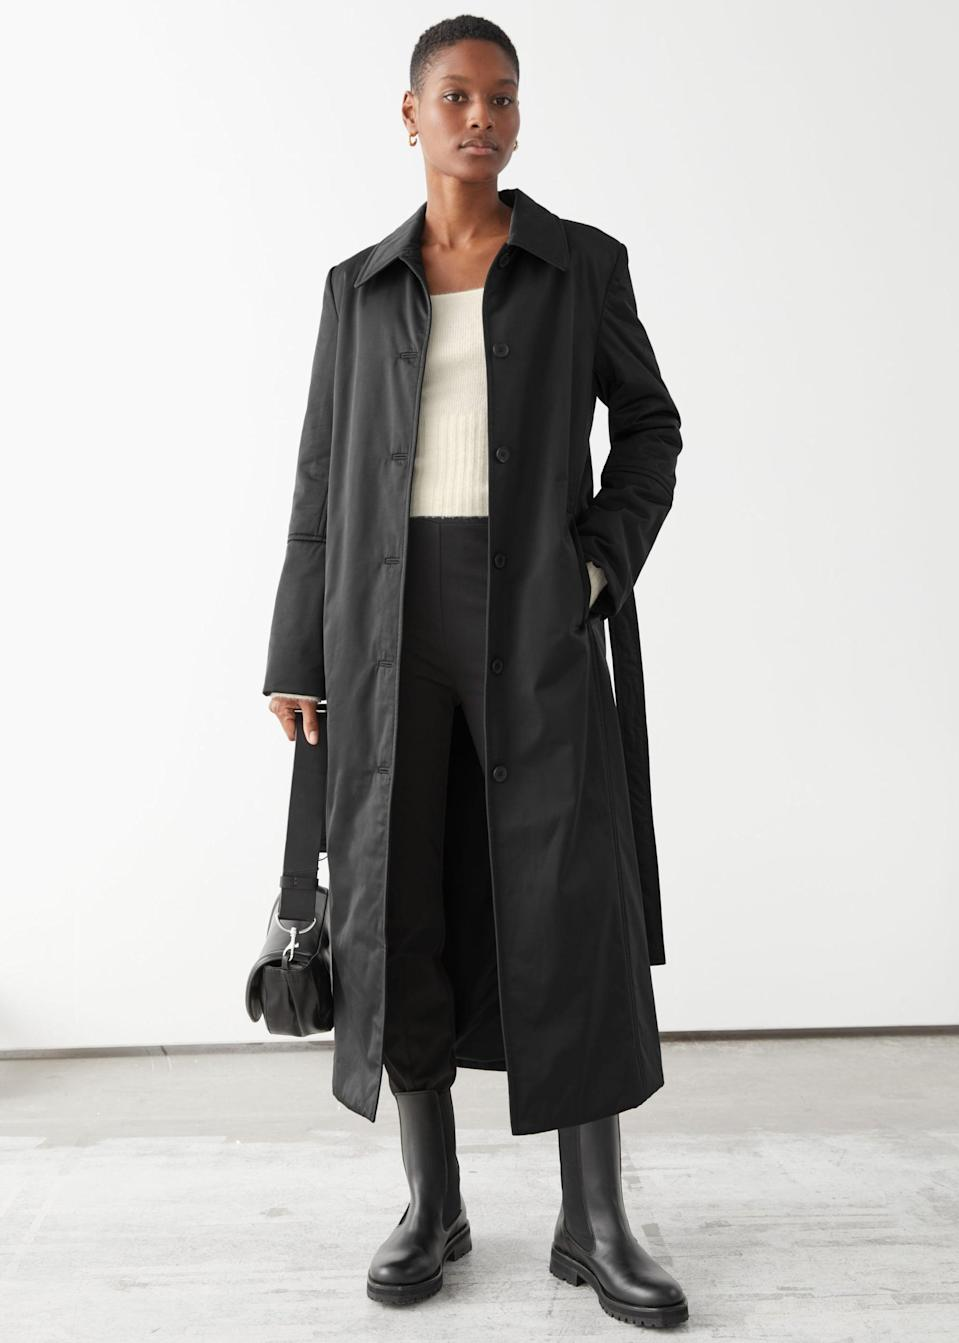 <p>This <span>&amp; Other Stories Fitted Belted Padded Coat</span> ($89, originally $179) is so dainty and cute. It also looks supersoft.</p>